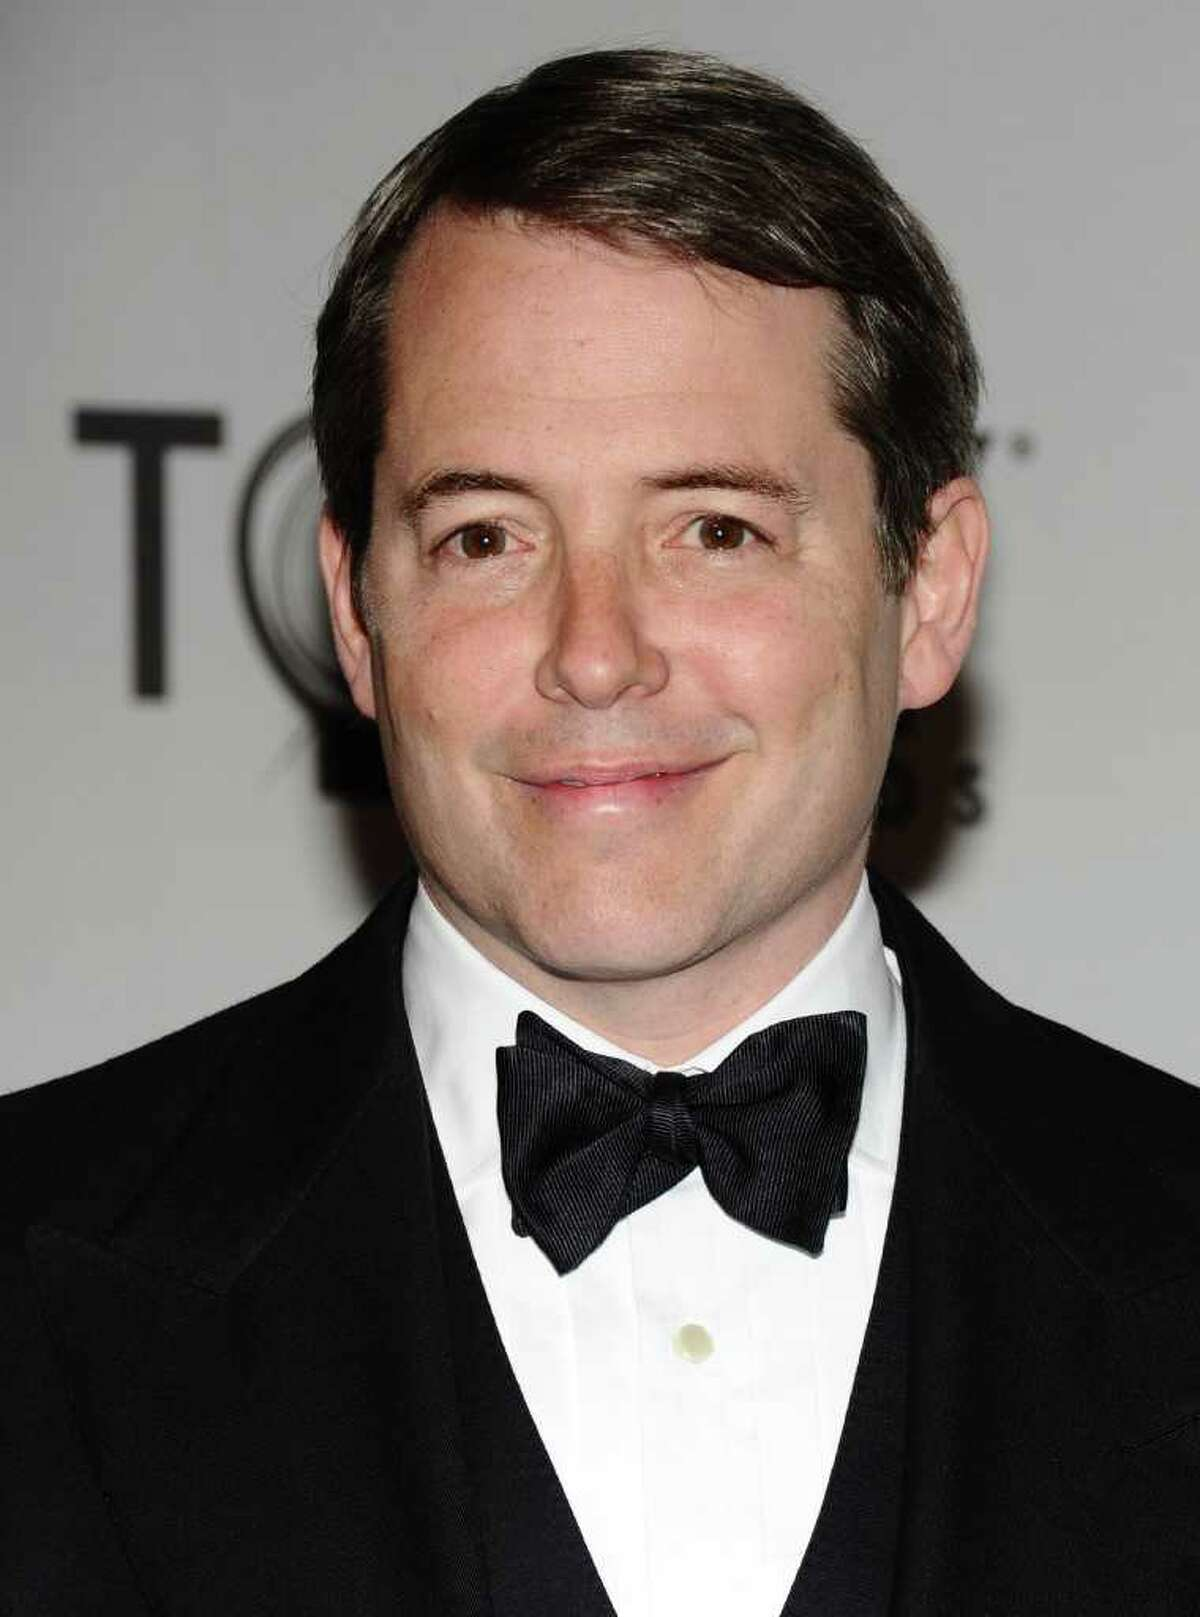 Matthew Broderick arrives at the 65th annual Tony Awards, Sunday, June 12, 2011 in New York. (AP Photo/Charles Sykes)